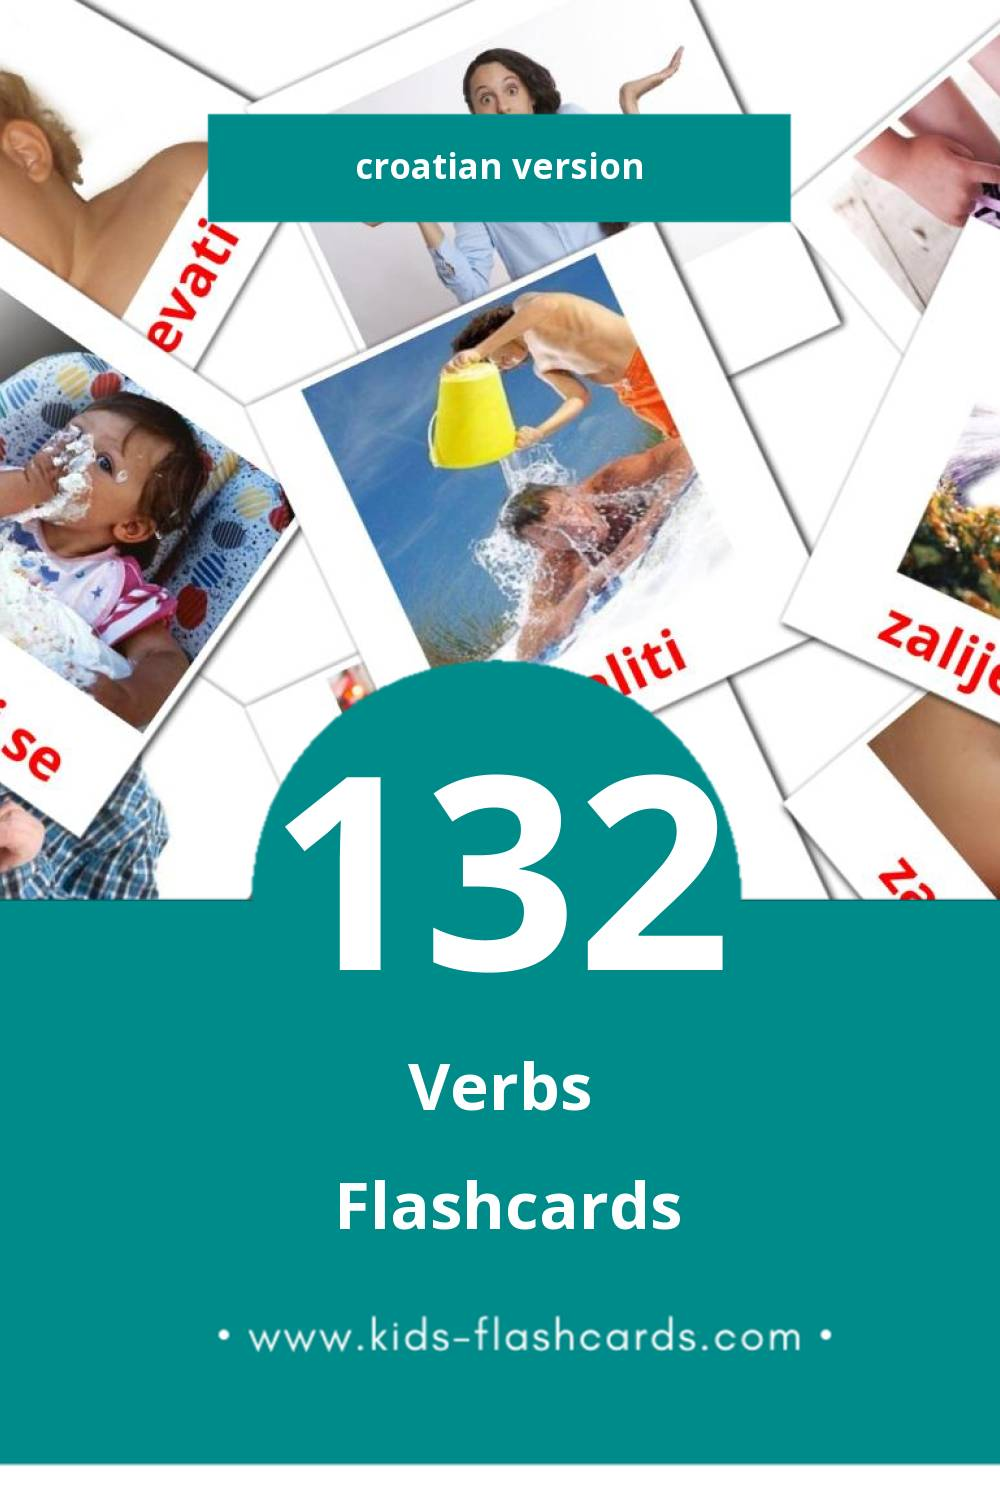 Visual Glagoli Flashcards for Toddlers (133 cards in Croatian)